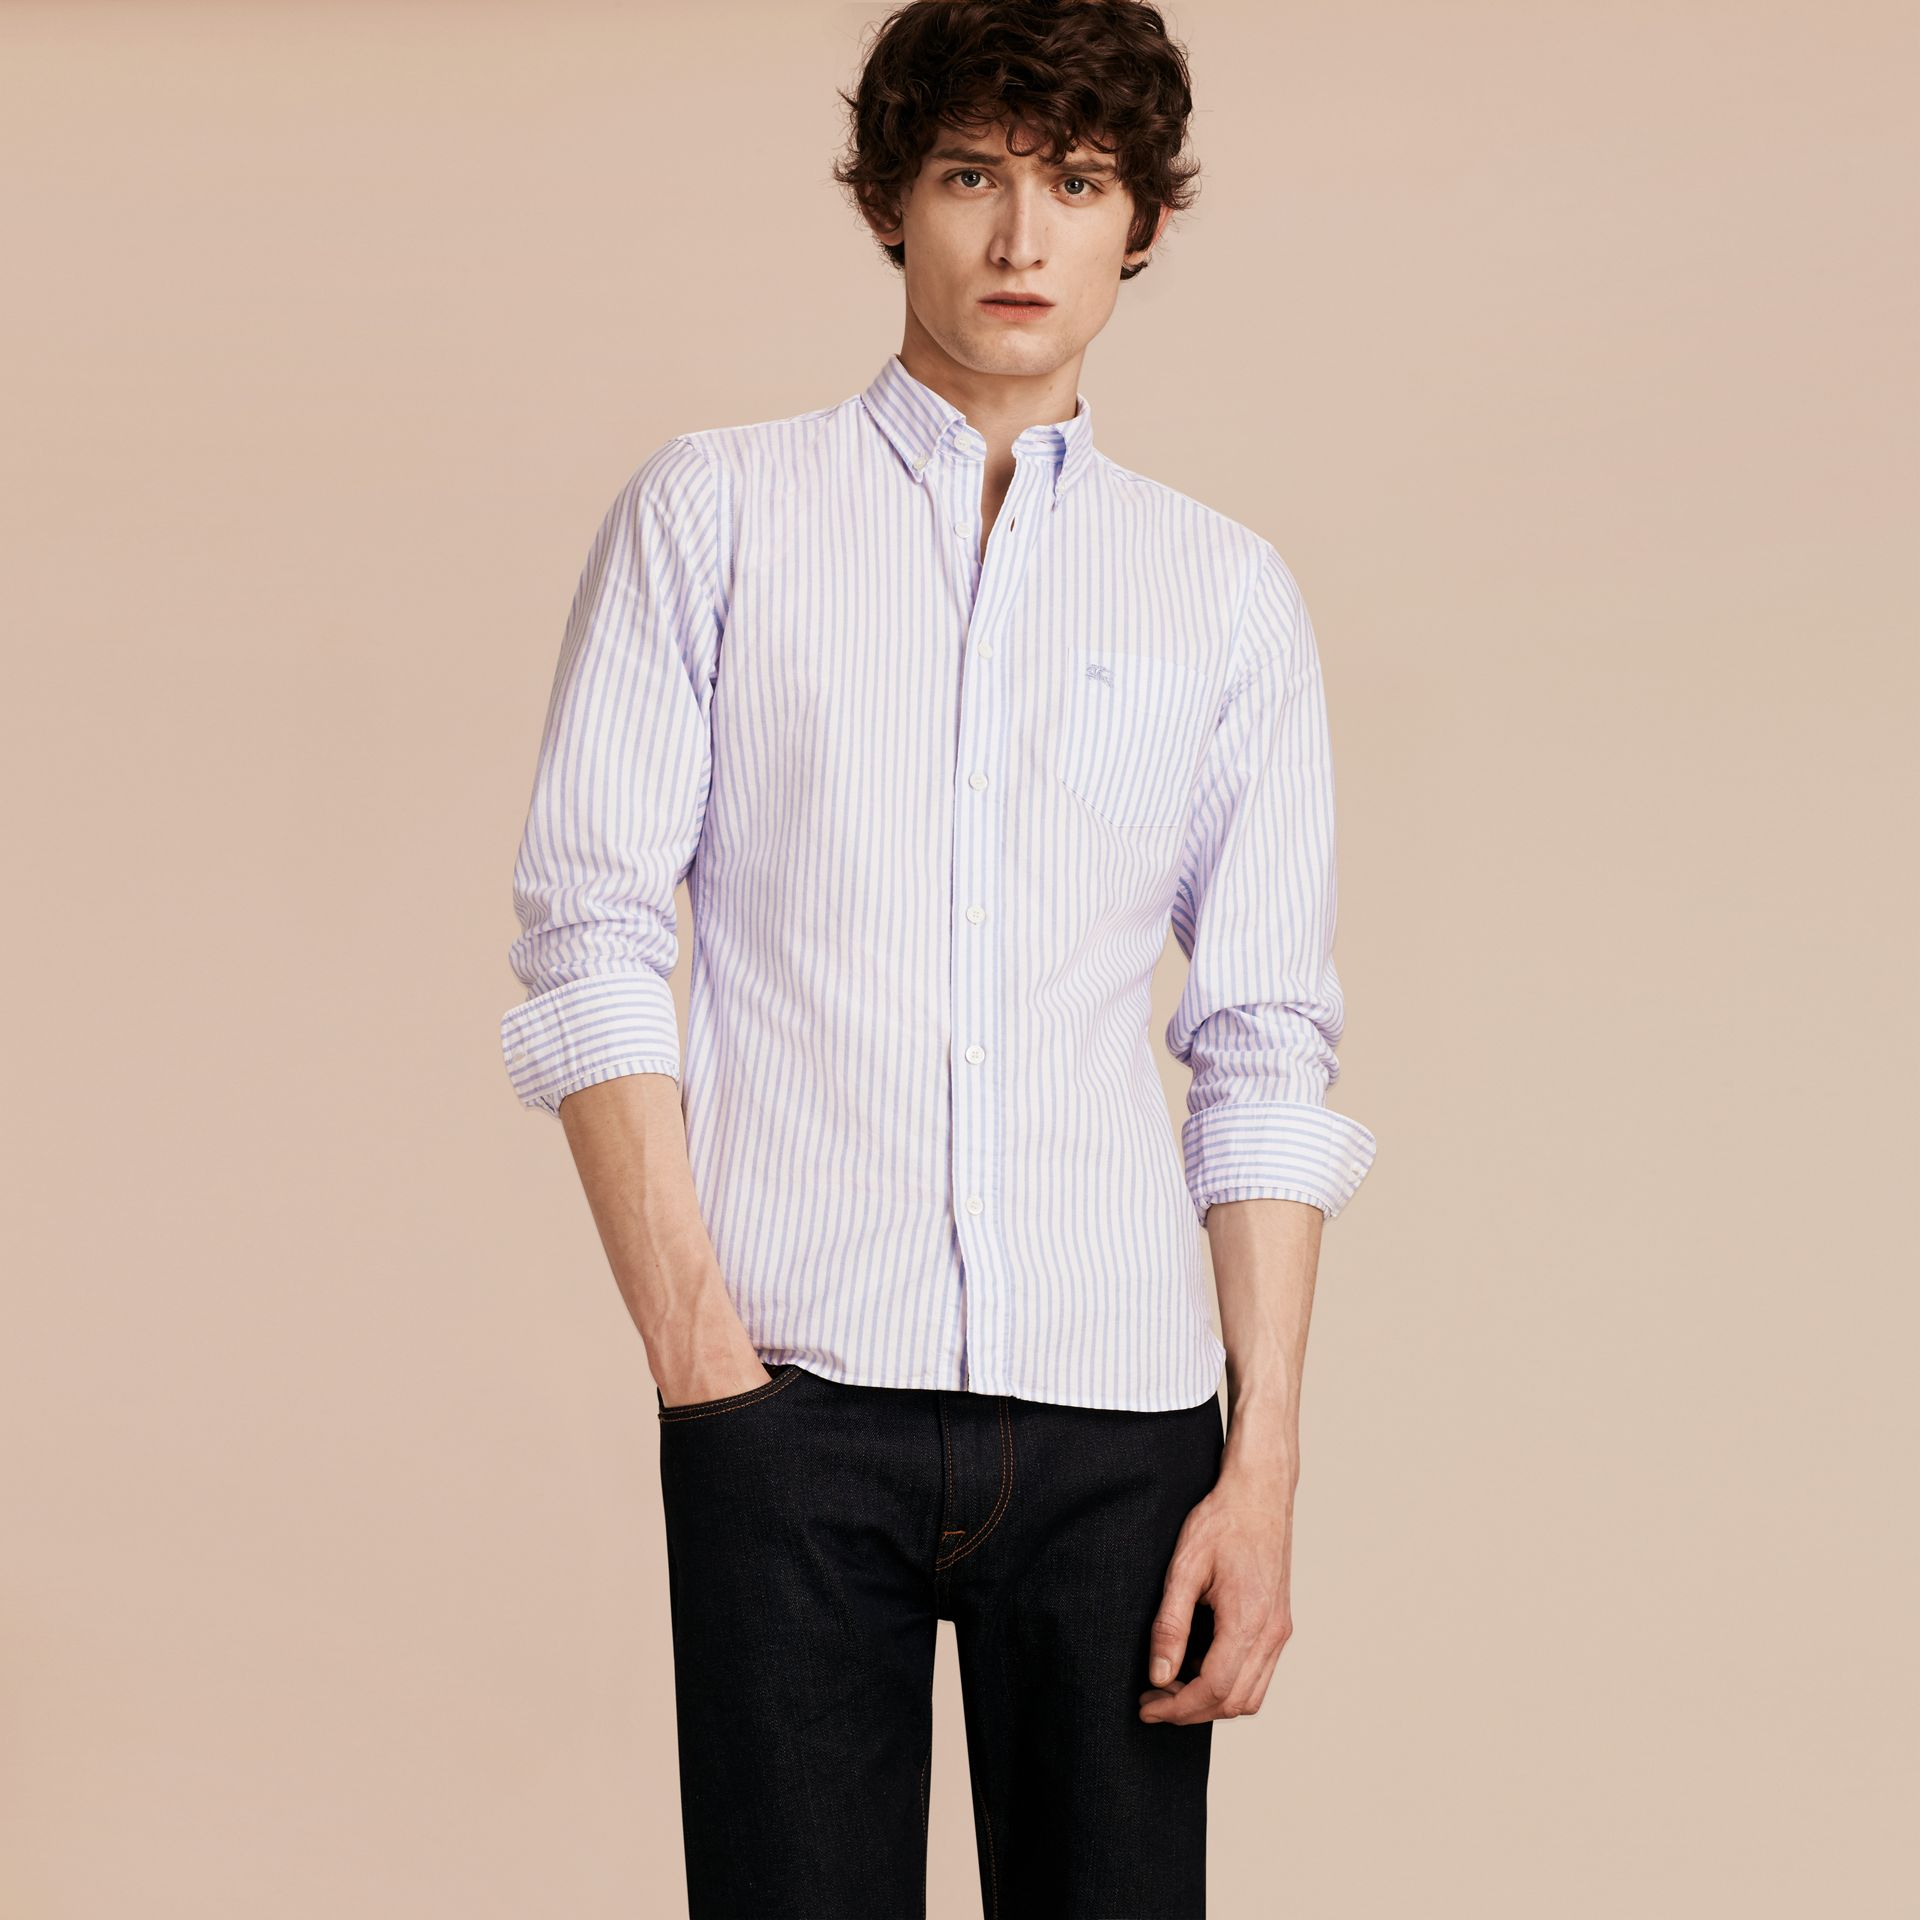 Button-down Collar Oxford Stripe Cotton Shirt Pale Blue - gallery image 5